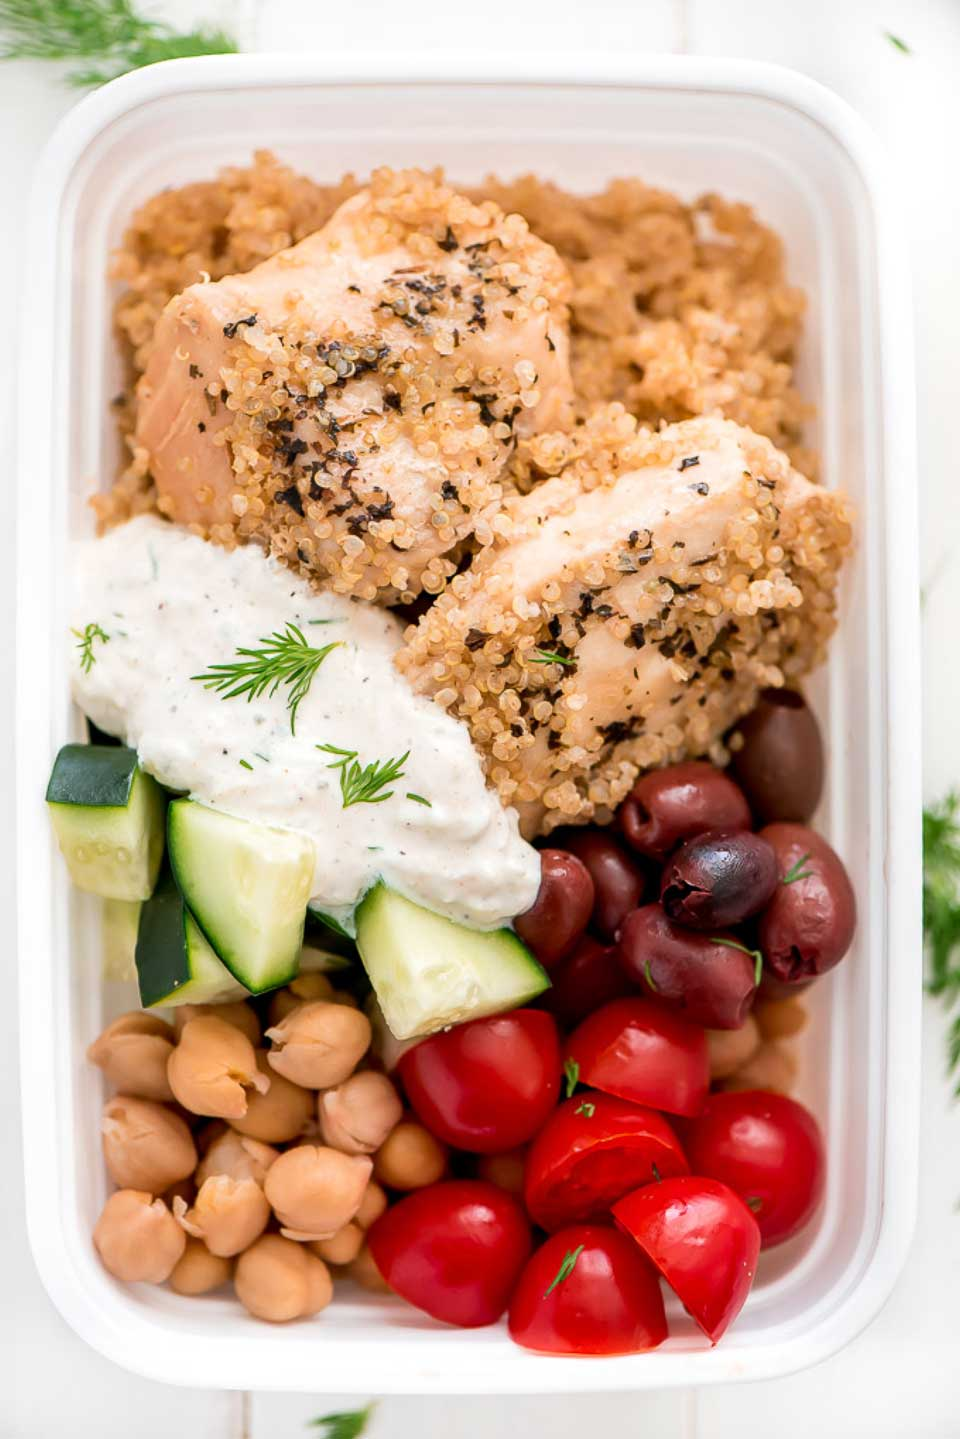 Our list of Healthy Instant Pot Chicken Recipes includes this scrumptious Instant Pot Greek Chicken Quinoa Bowls {Meal Prep} from Melanie at Garnish & Glaze. What a great way to pre-cook weekly meals!